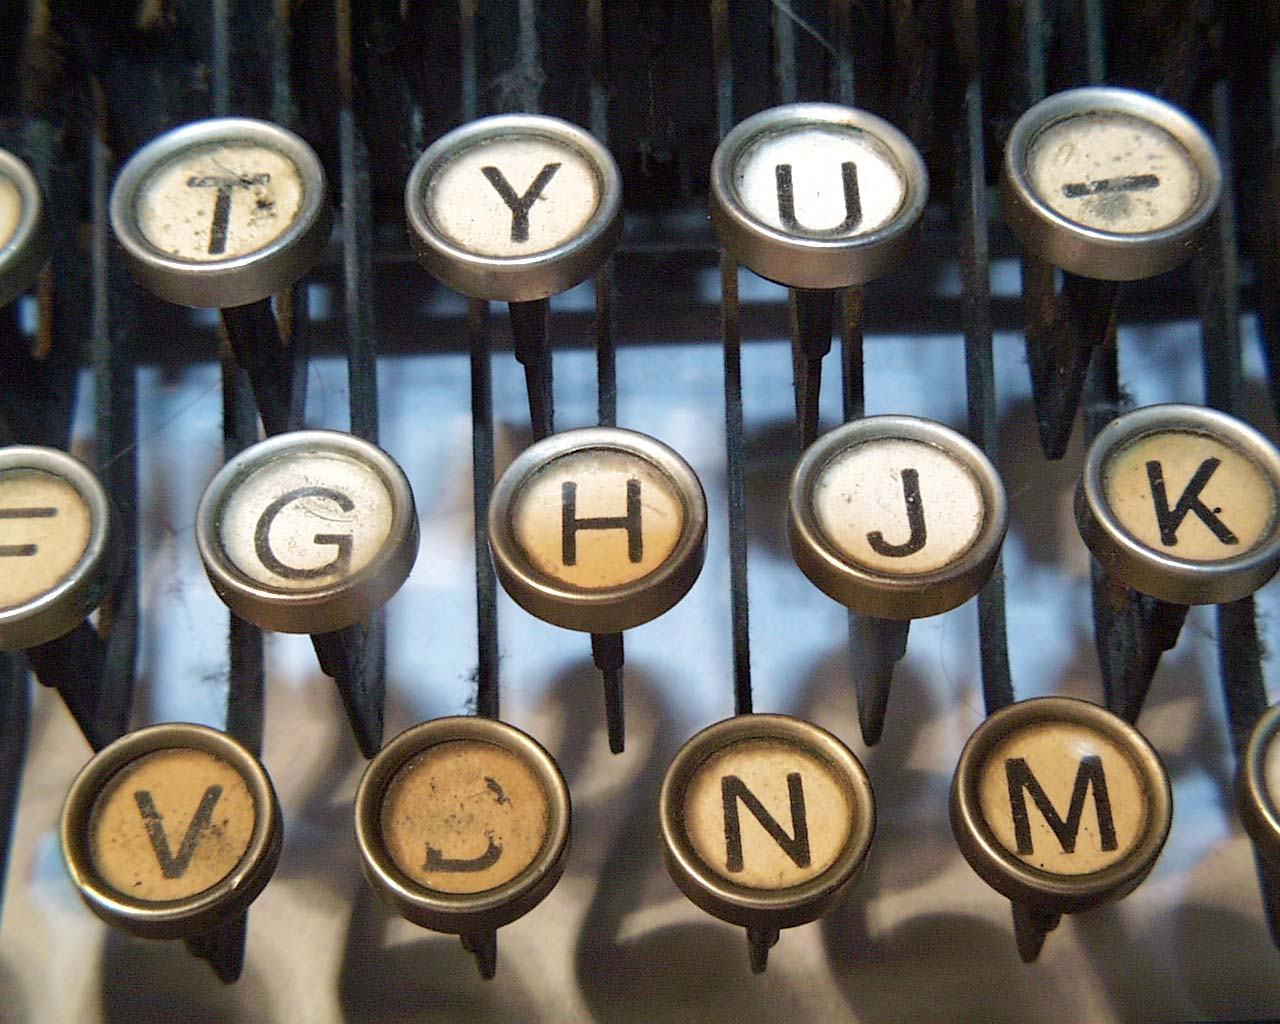 typewriter keys: typing ourselves whole!